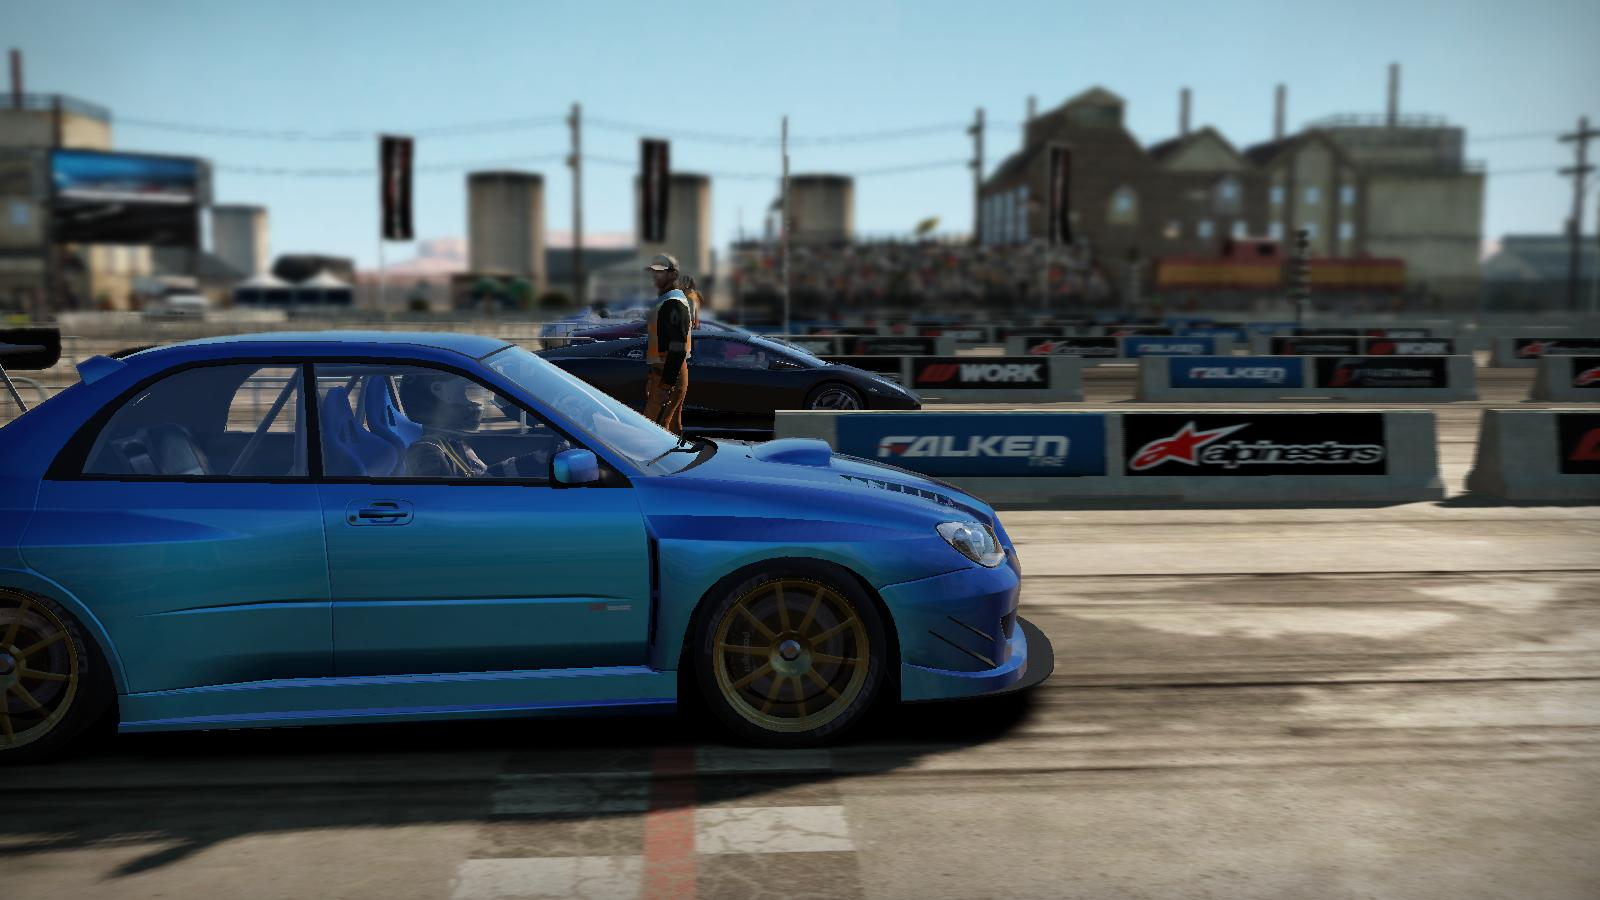 Nfs shift 2 patch 1 02 ps3 network